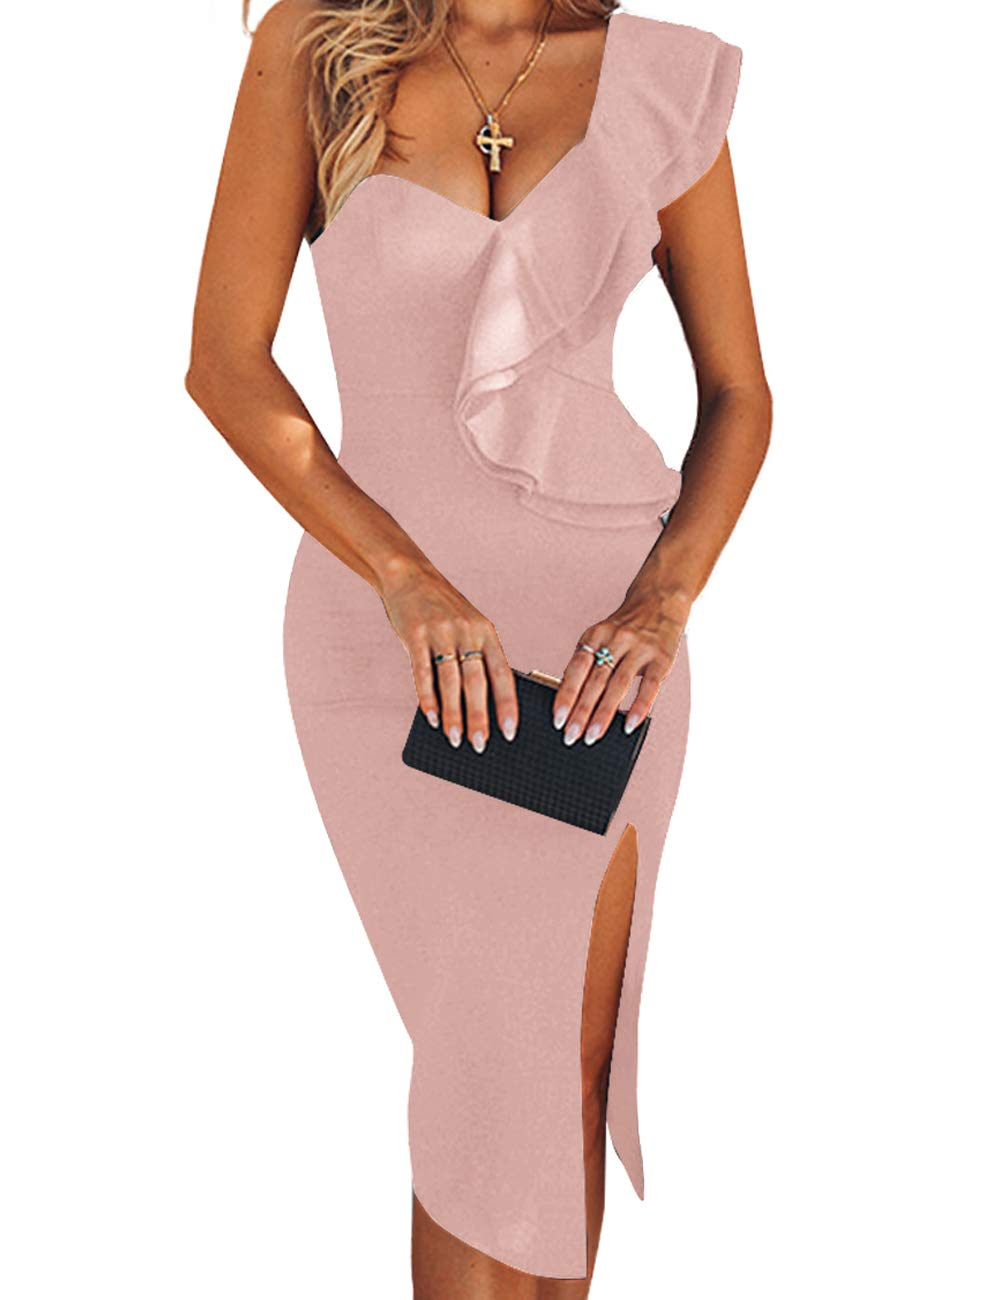 UONBOX Women's One Shoulder Sleeveless Knee Length Side Split Fashion Bandage Dress (S, Apricot) - wiihuu